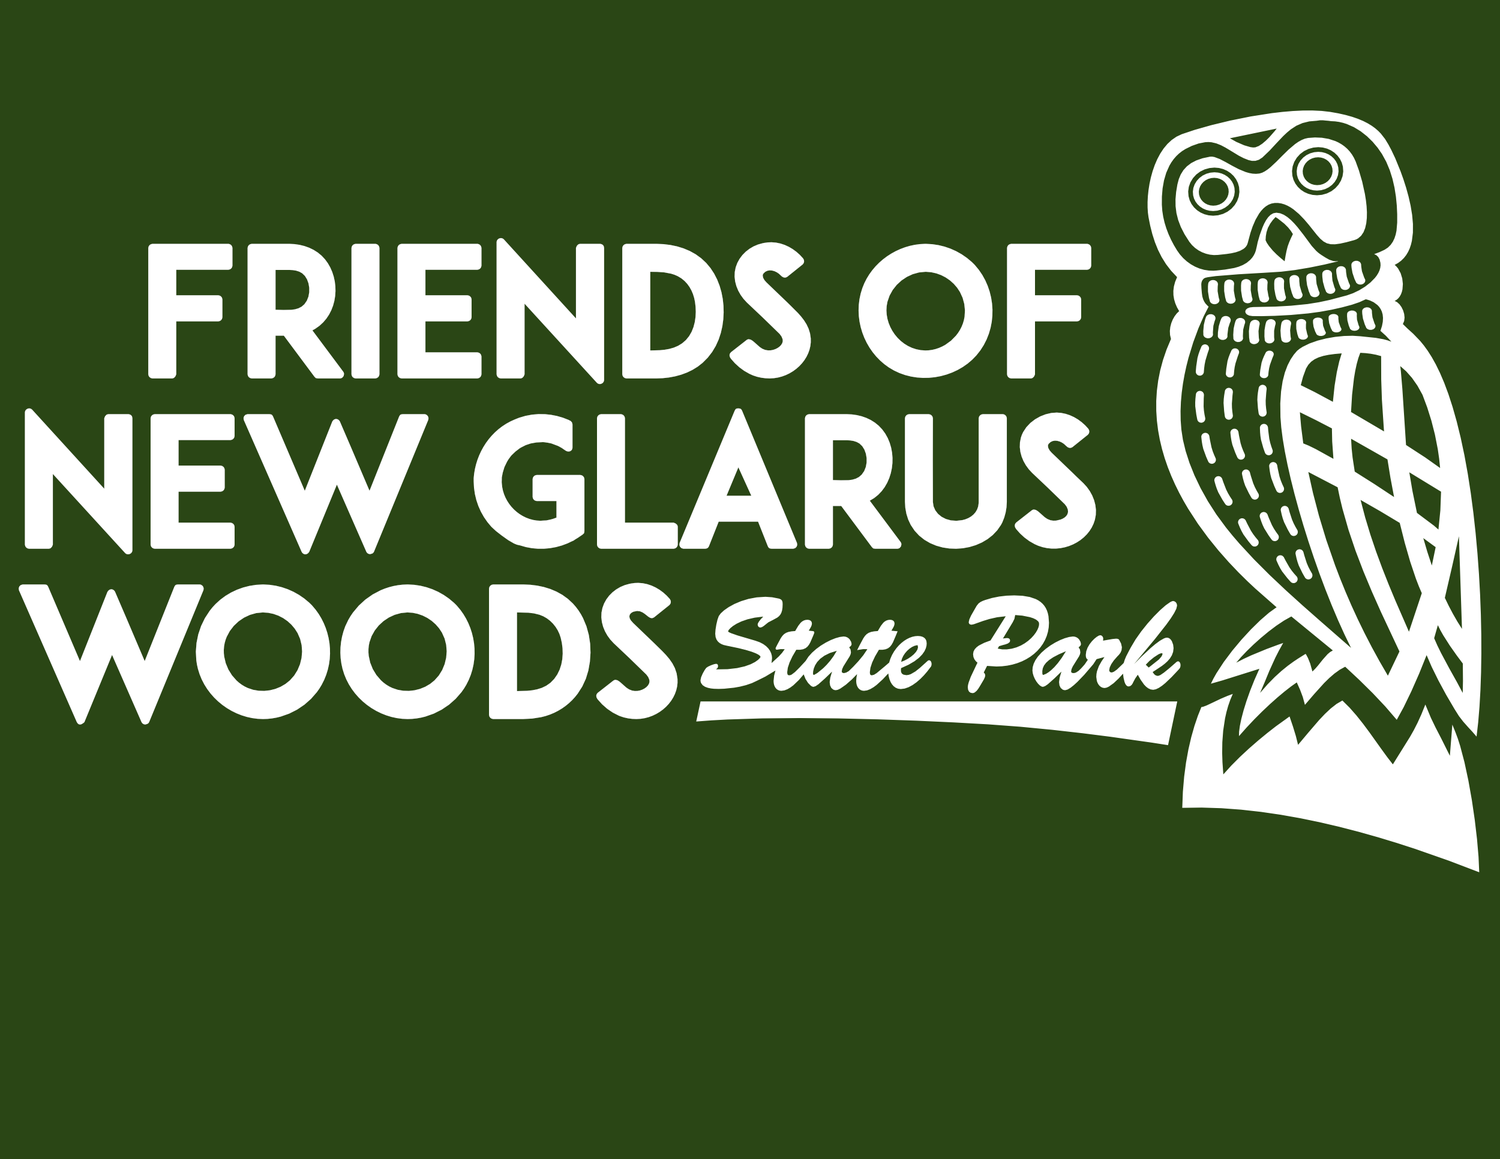 Friends of the New Glarus Woods State Park